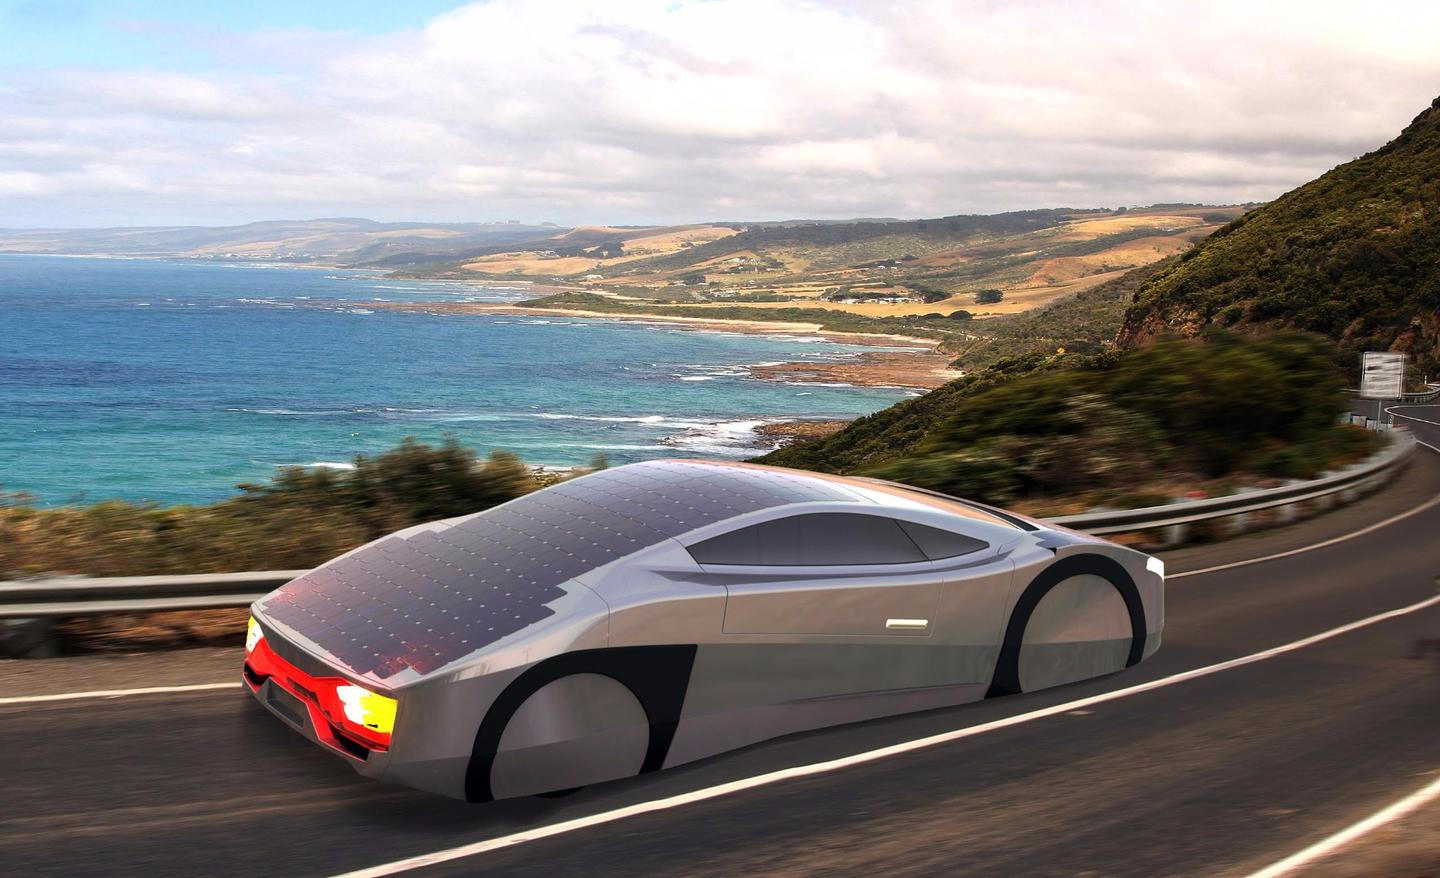 The Immortus is so light and aerodynamic, has such a light footprint on the road and so many built-in solar panels, that it is designed to drive for an unlimited range on a sunny day